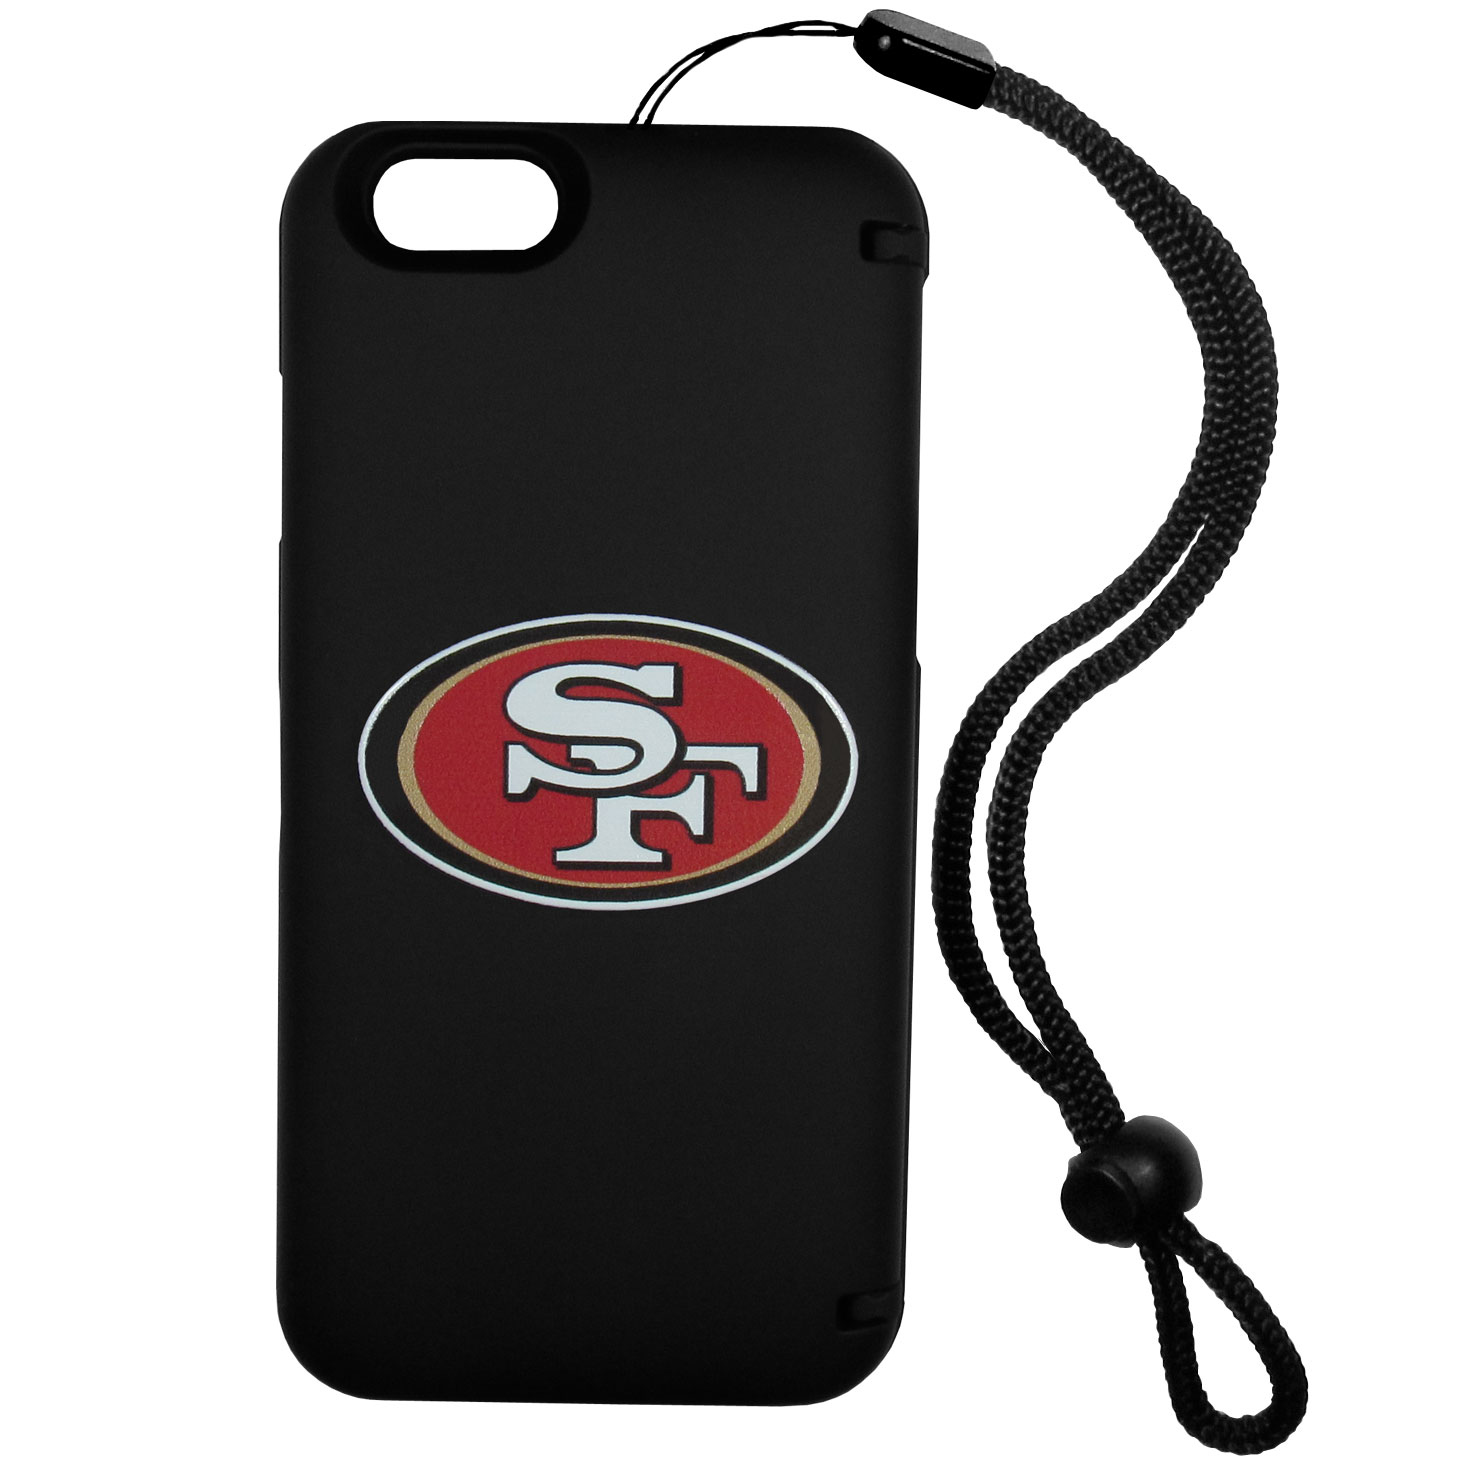 San Francisco 49ers iPhone 6 Everything Case - This case really does have everything but the kitchen sink! The hidden compartment lets you keep your cards, money and tickets to the big game safe and secure and has a compact mirror so you can make sure your game face is ready to go. It also comes with a kickstand to make chatting and watching videos a breeze. The wrist strap allows you to travel with ease with your everything case. If that's not enough, it also comes with the San Francisco 49ers logo printed in expert detail on the front.